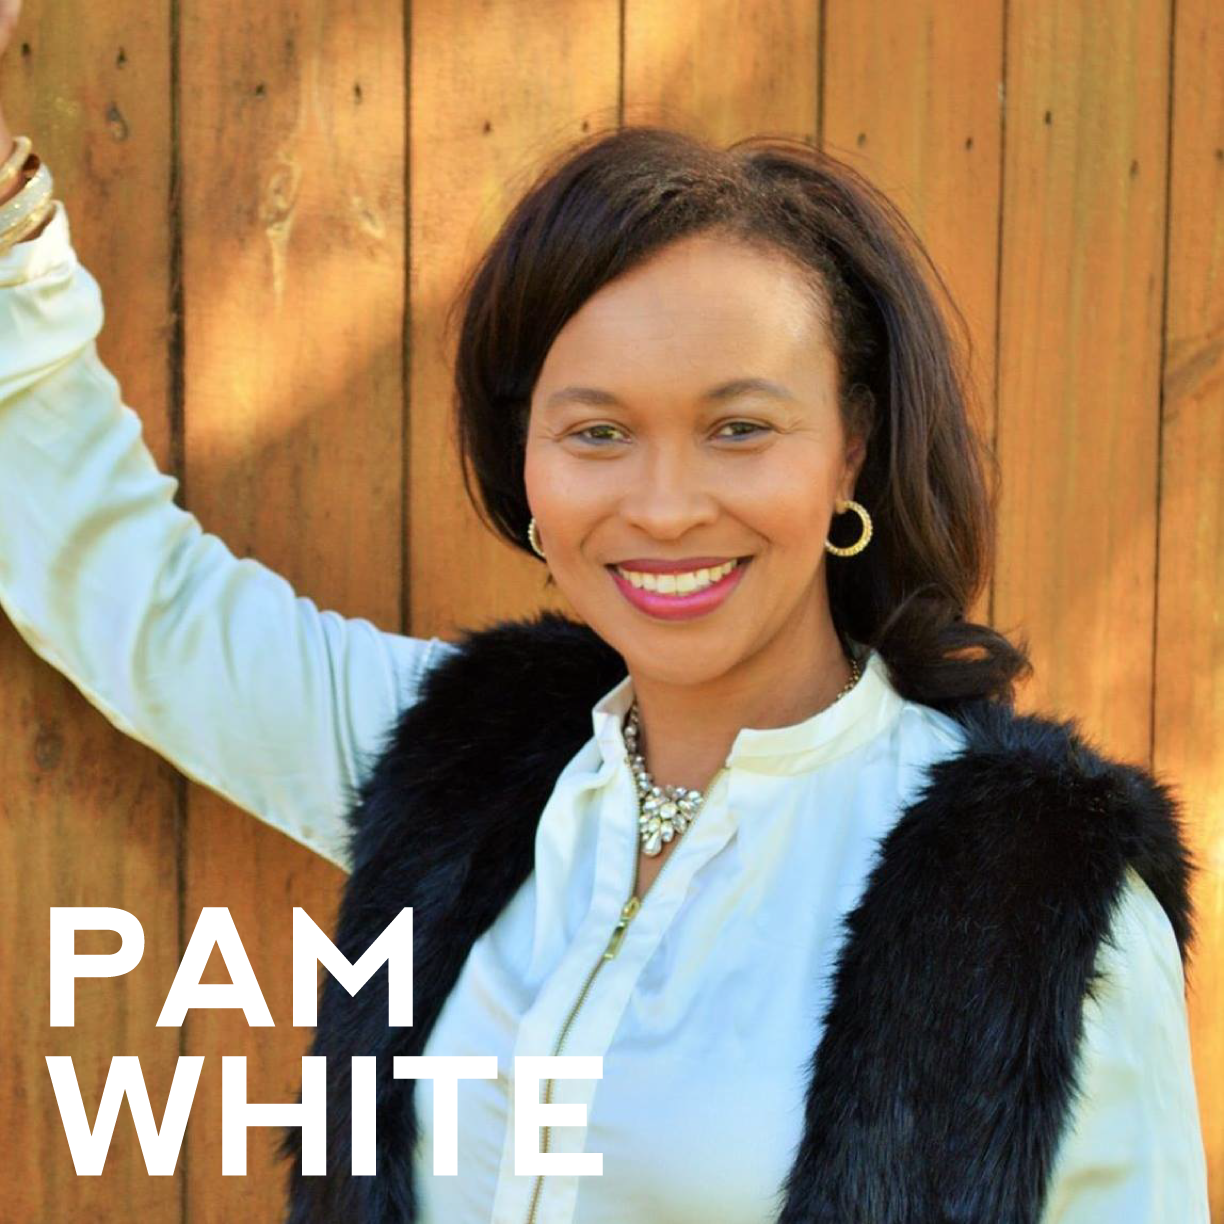 Pam-White.png